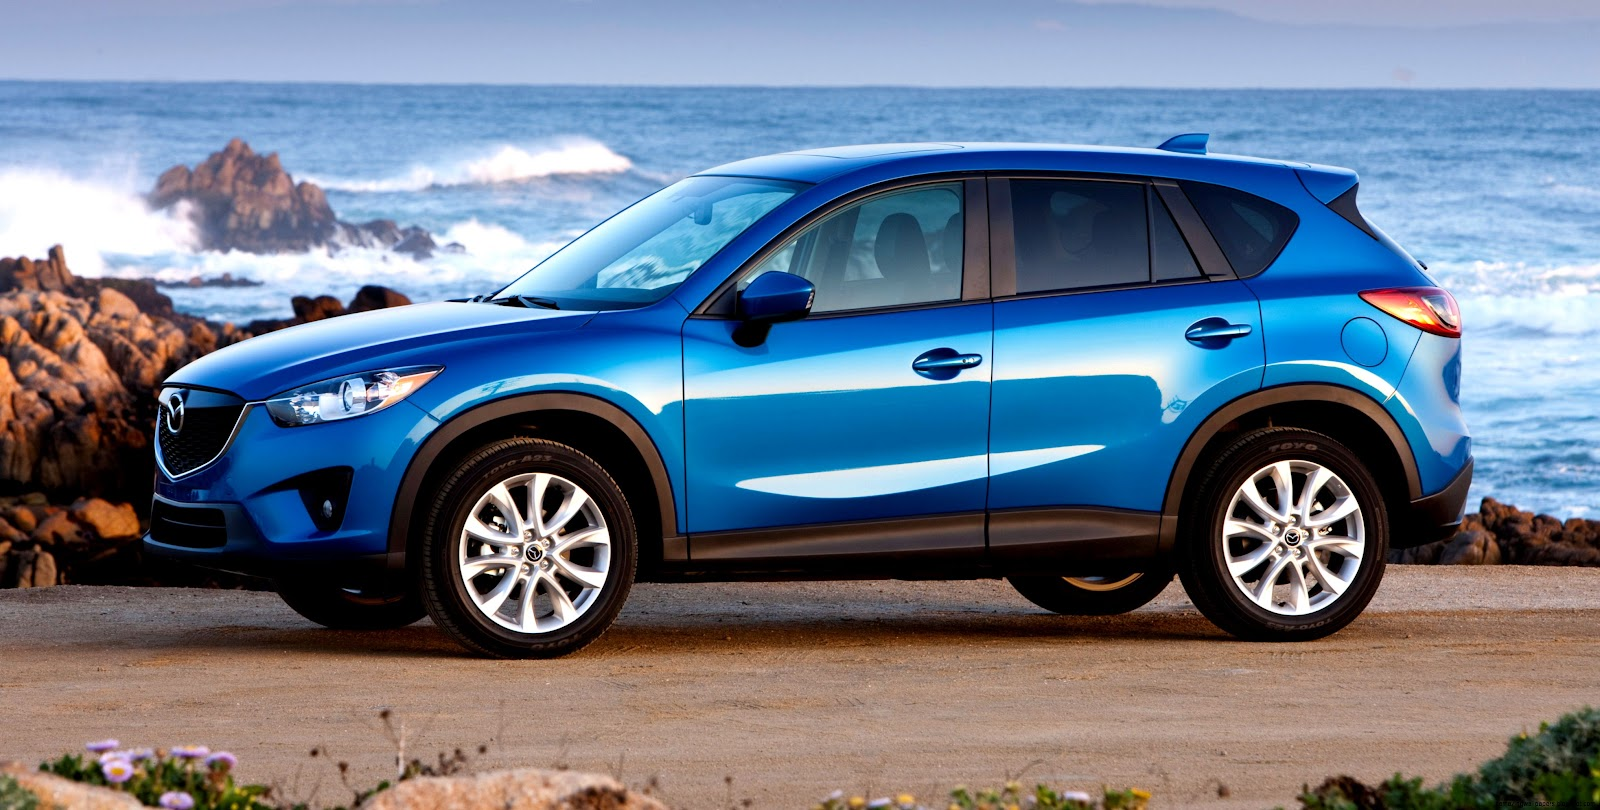 mazda cx5 2014 blue amazing wallpapers. Black Bedroom Furniture Sets. Home Design Ideas